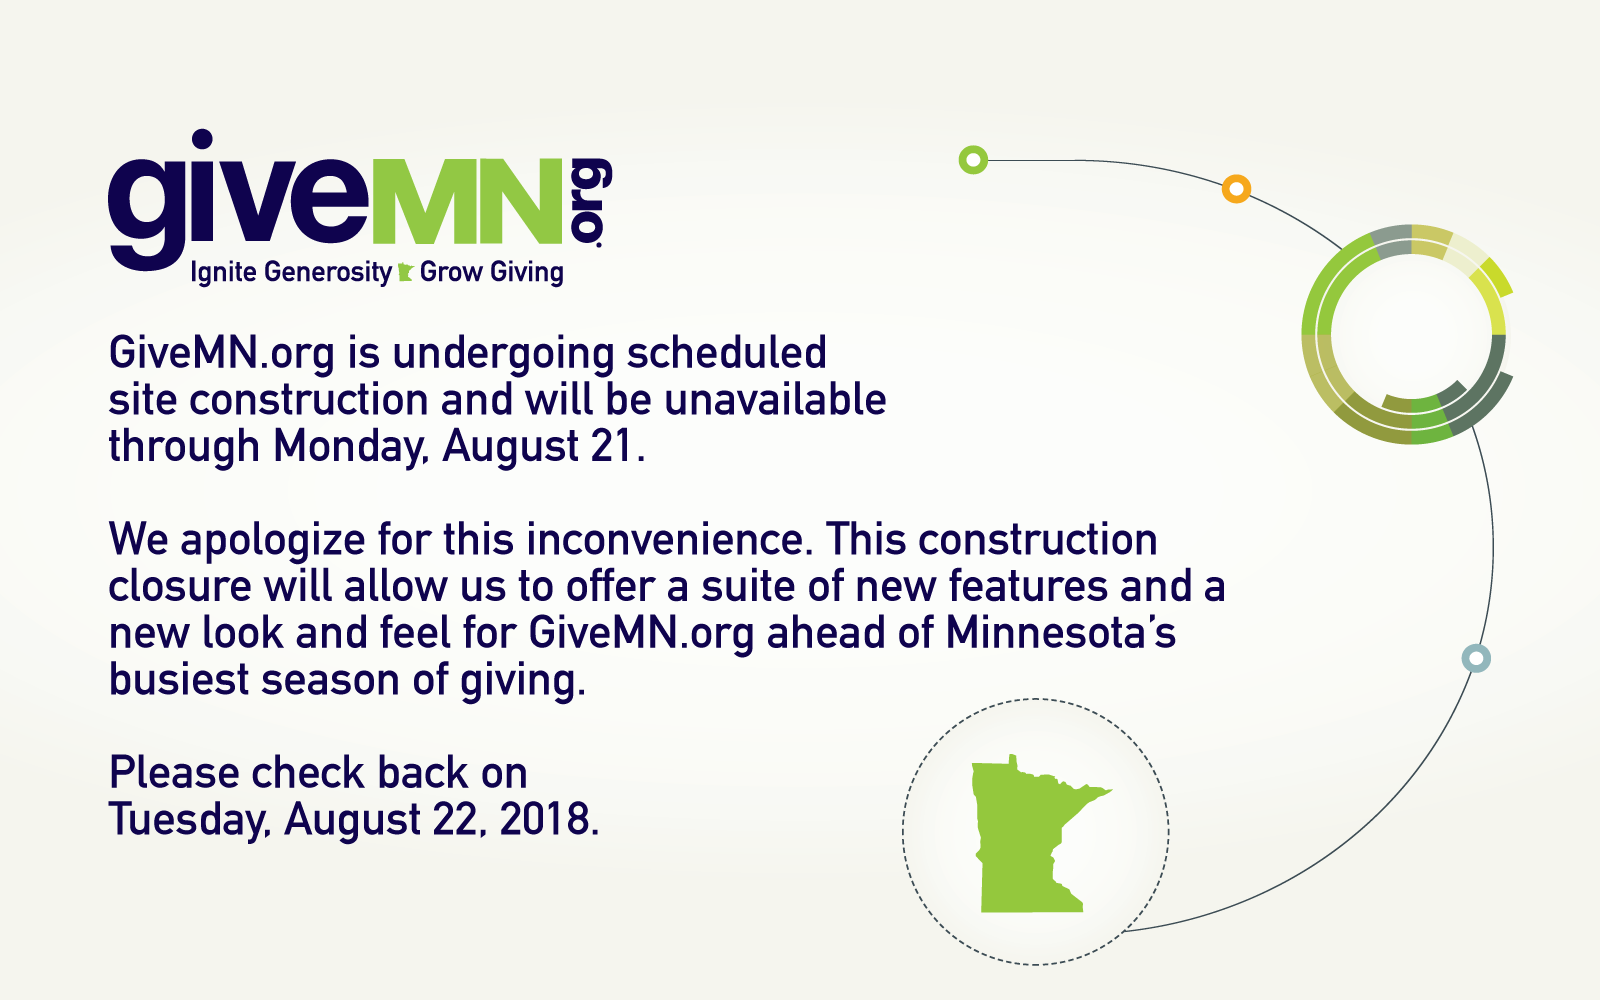 GiveMN.org is undergoing scheduled site construction and will be unavailable through Monday, August 21. We apologize for this inconvenience. This construction closure will allow us to offer a suite of new features and a new look and feel for GiveMN.org ahead of Minnesota's busiest season of giving. Please check back on Tuesday, August 22, 2018.